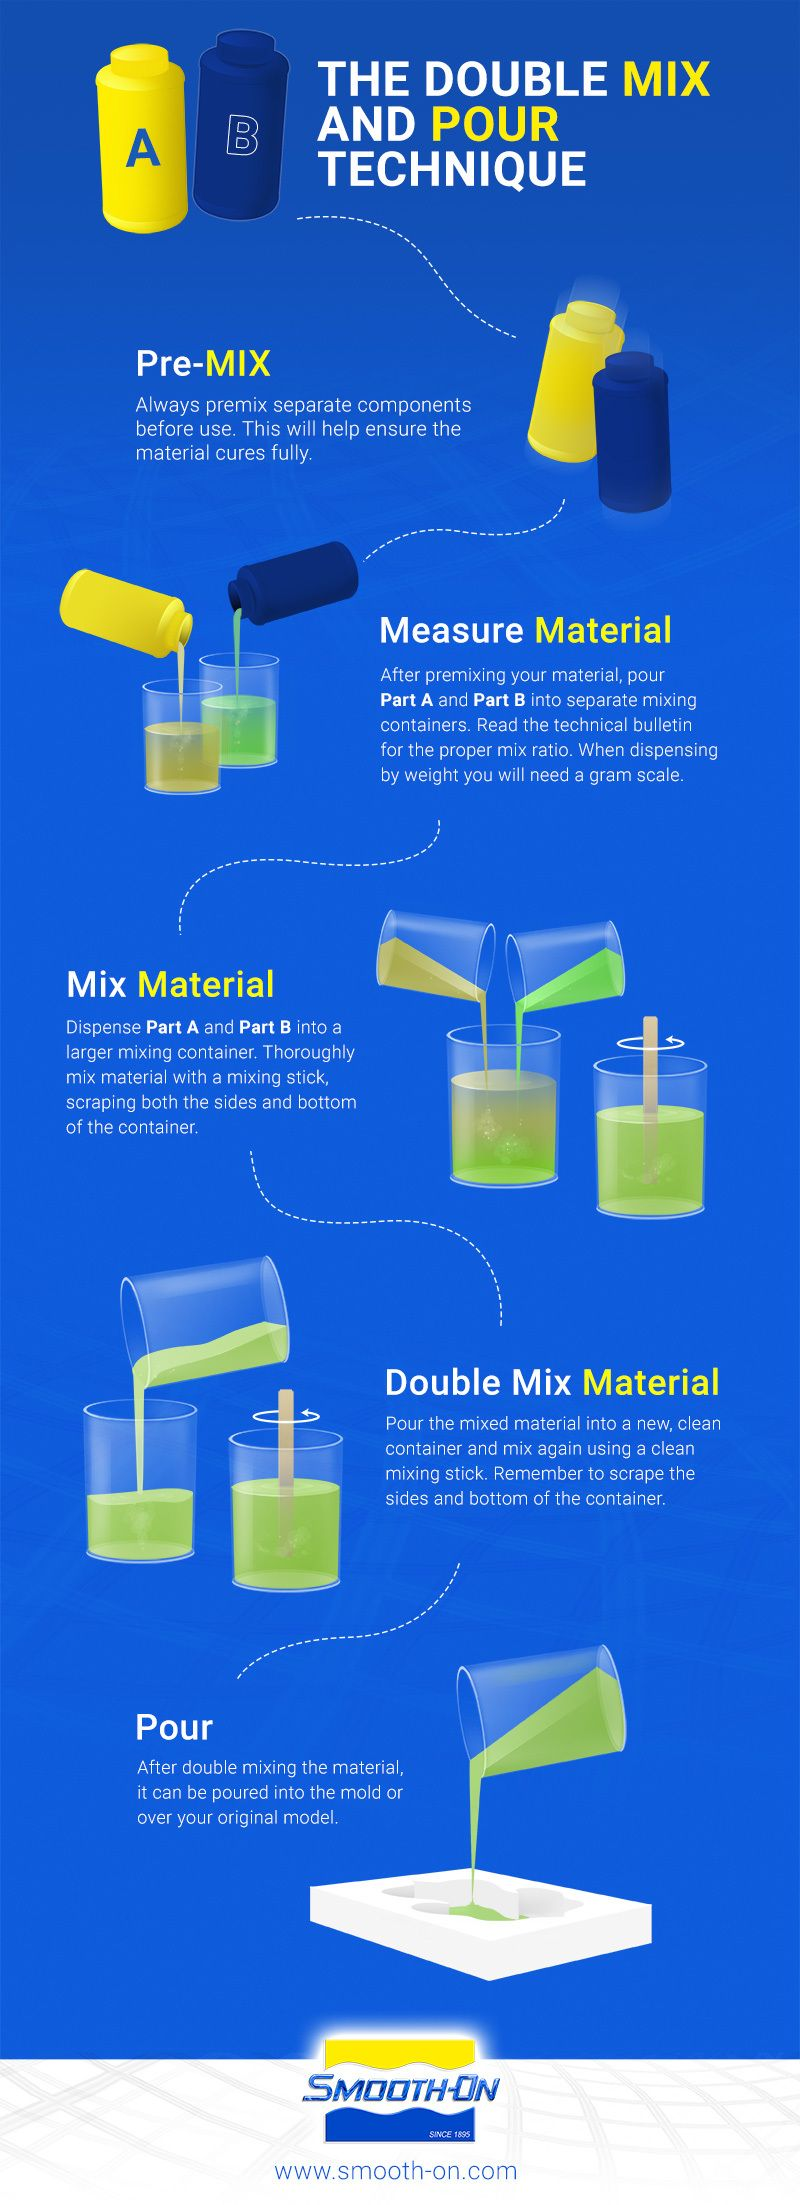 The 'double mix and pour technique' helps ensure thorough